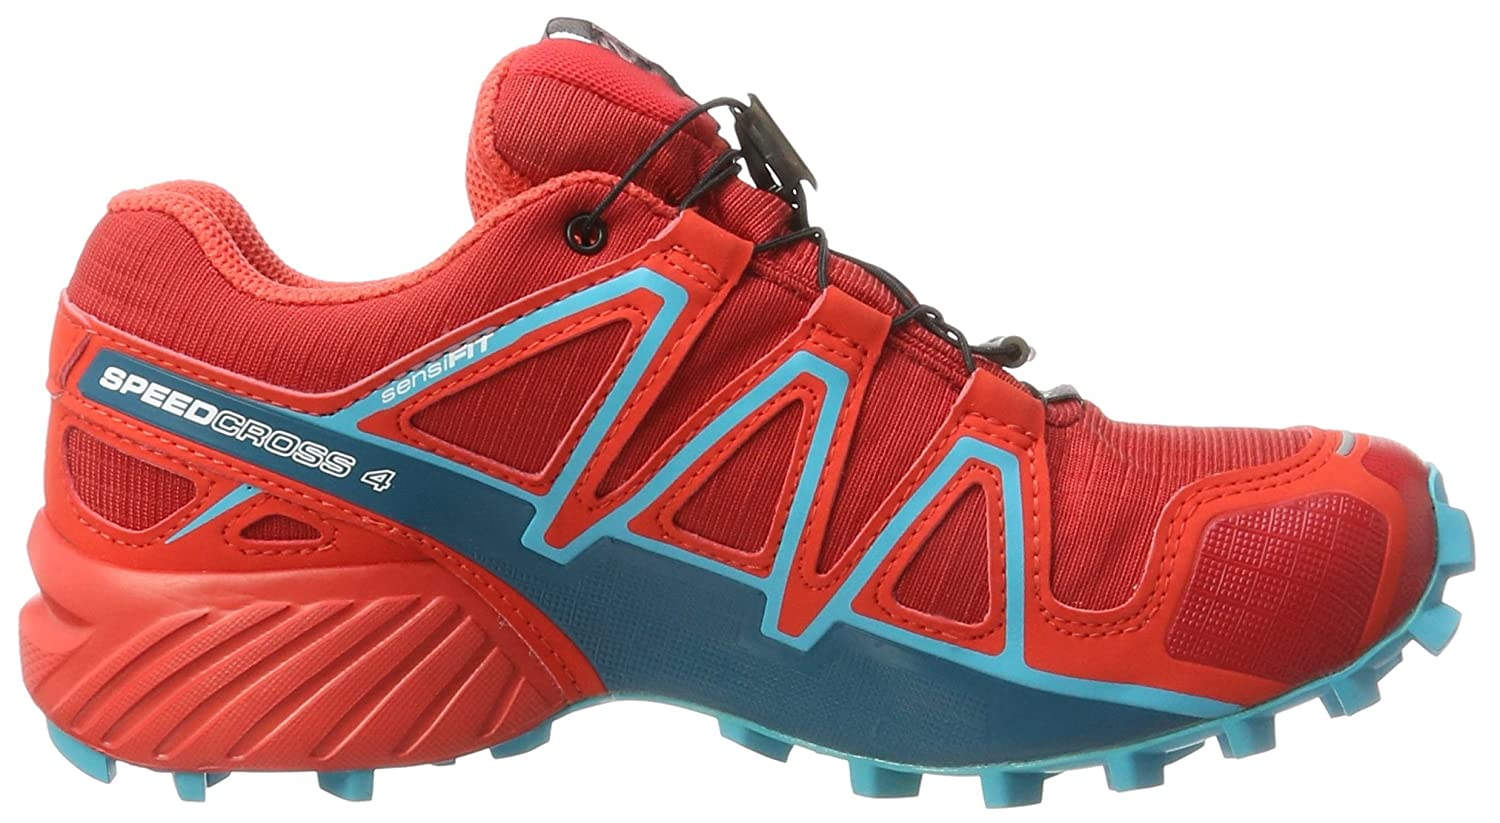 Salomon Women's Speedcross 4 GTX W Trail Running US|Barbados Shoe B01MTAP6LR 8.5 B(M) US|Barbados Running Cherry 476552